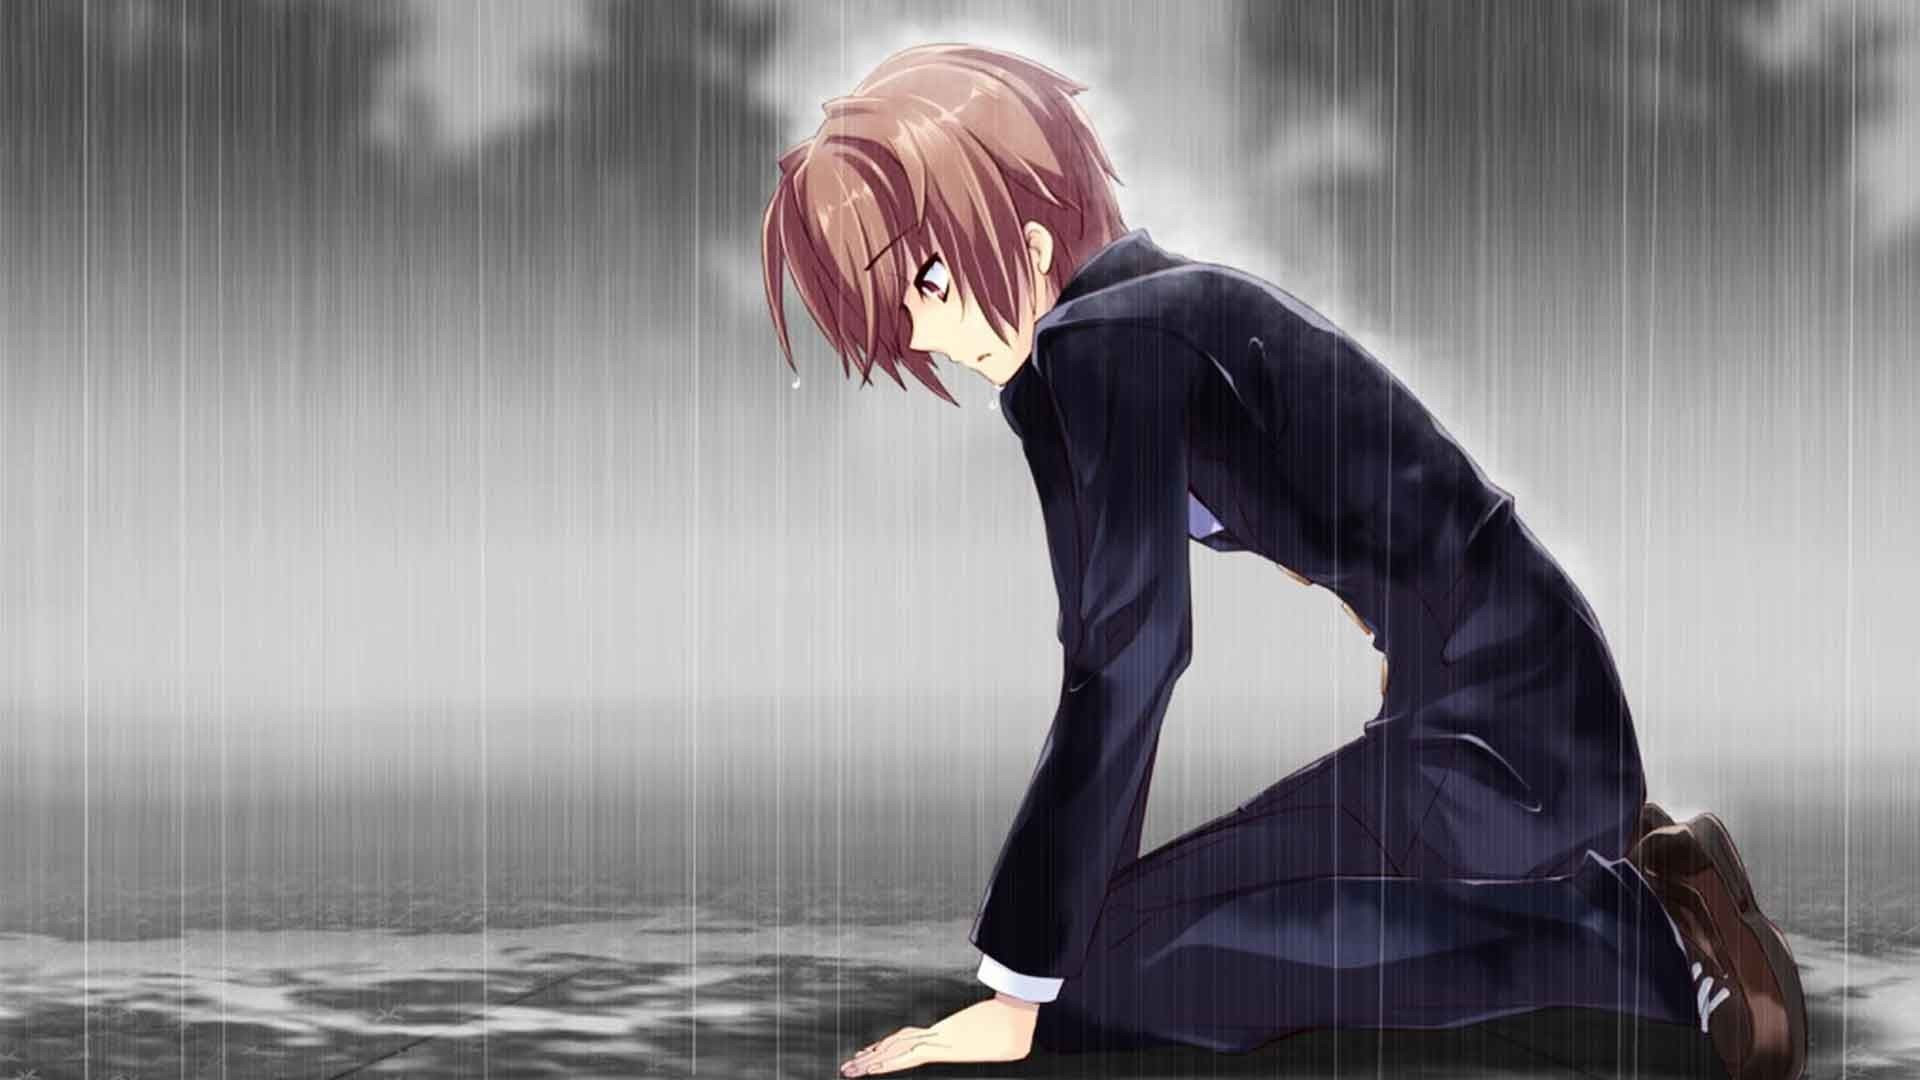 Sad Anime Boy Wallpapers (67+ background pictures)